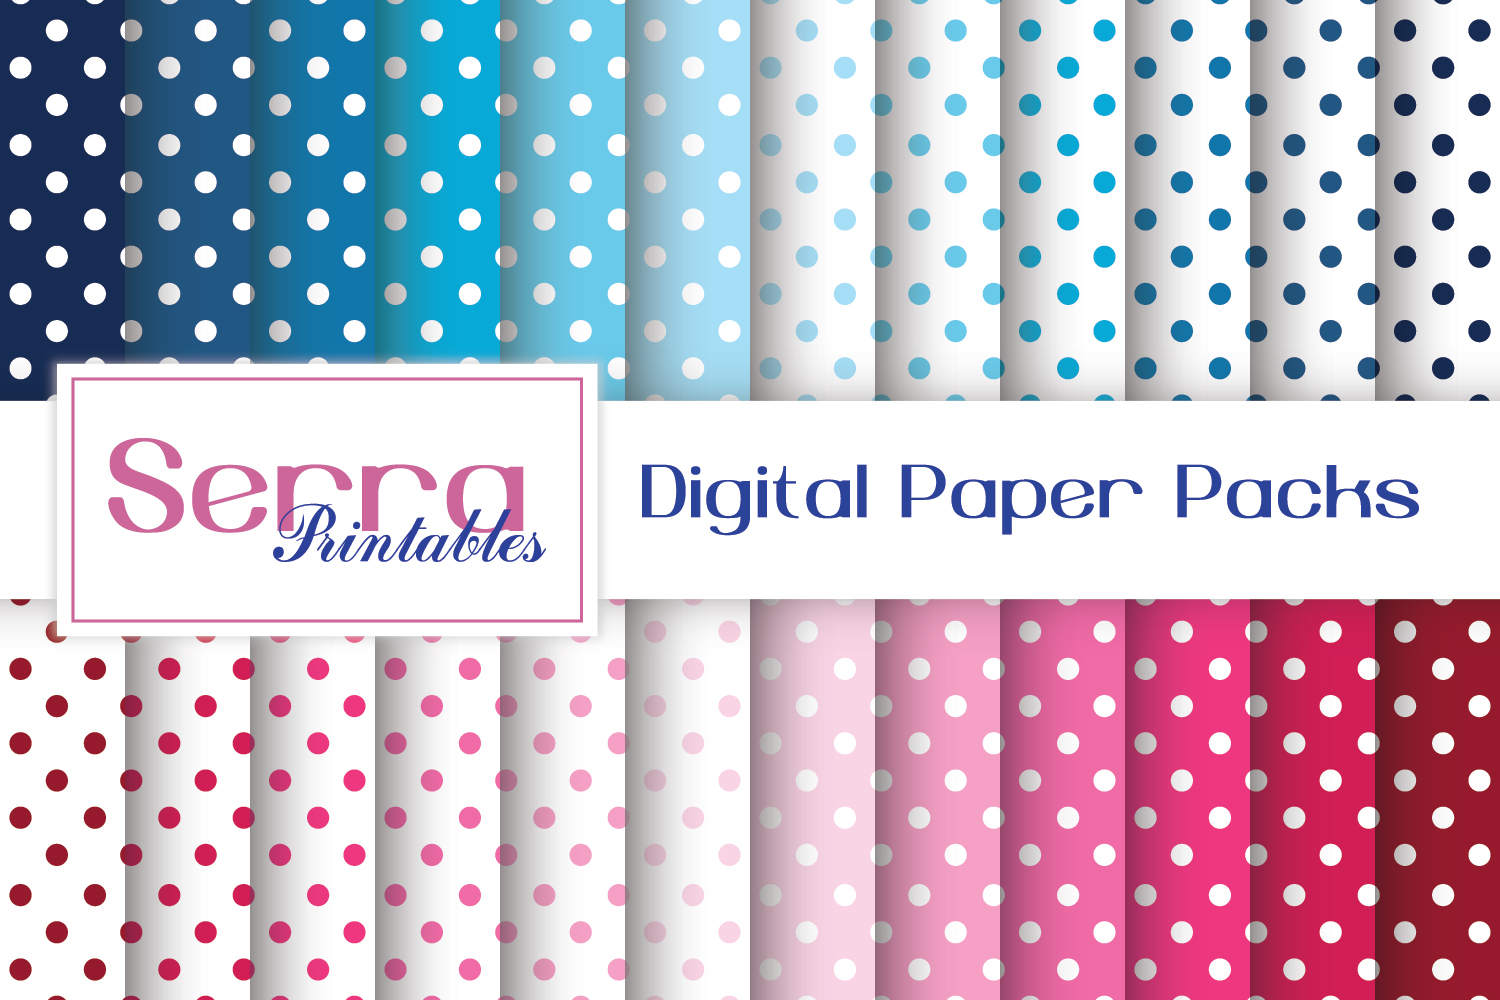 Download Free Seamless Polka Dot Digital Paper Pack Graphic By Serradigital for Cricut Explore, Silhouette and other cutting machines.